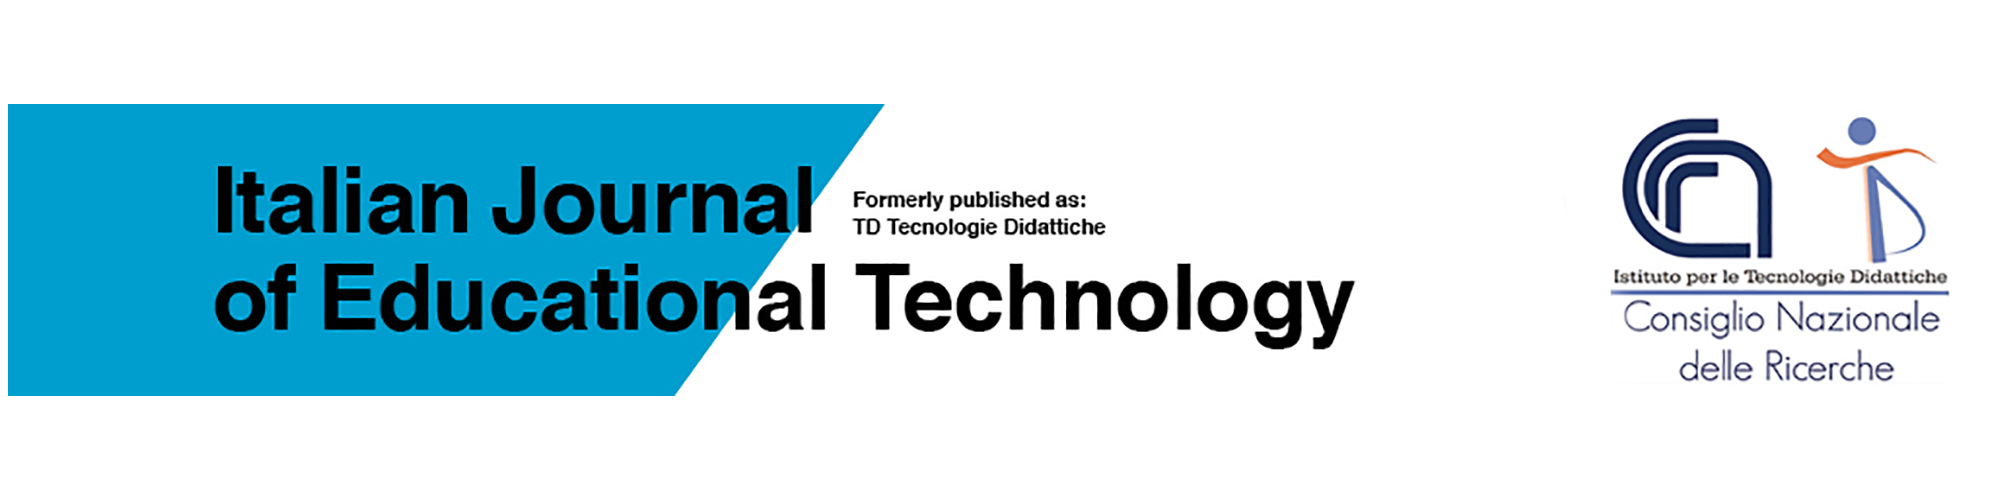 Italian Journal of Educational Technology - Cover pages